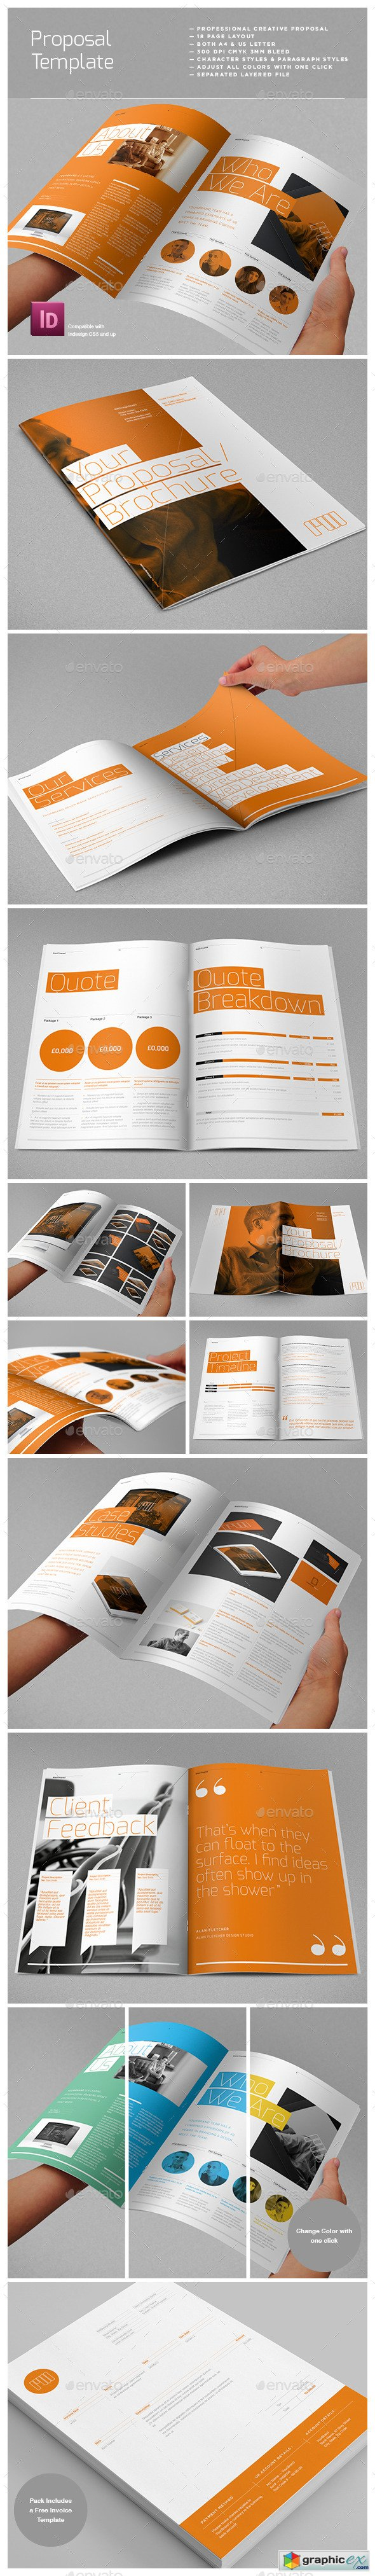 Proposal Layouts Agency Proposal Template  Template  Pinterest  Proposal Templates .